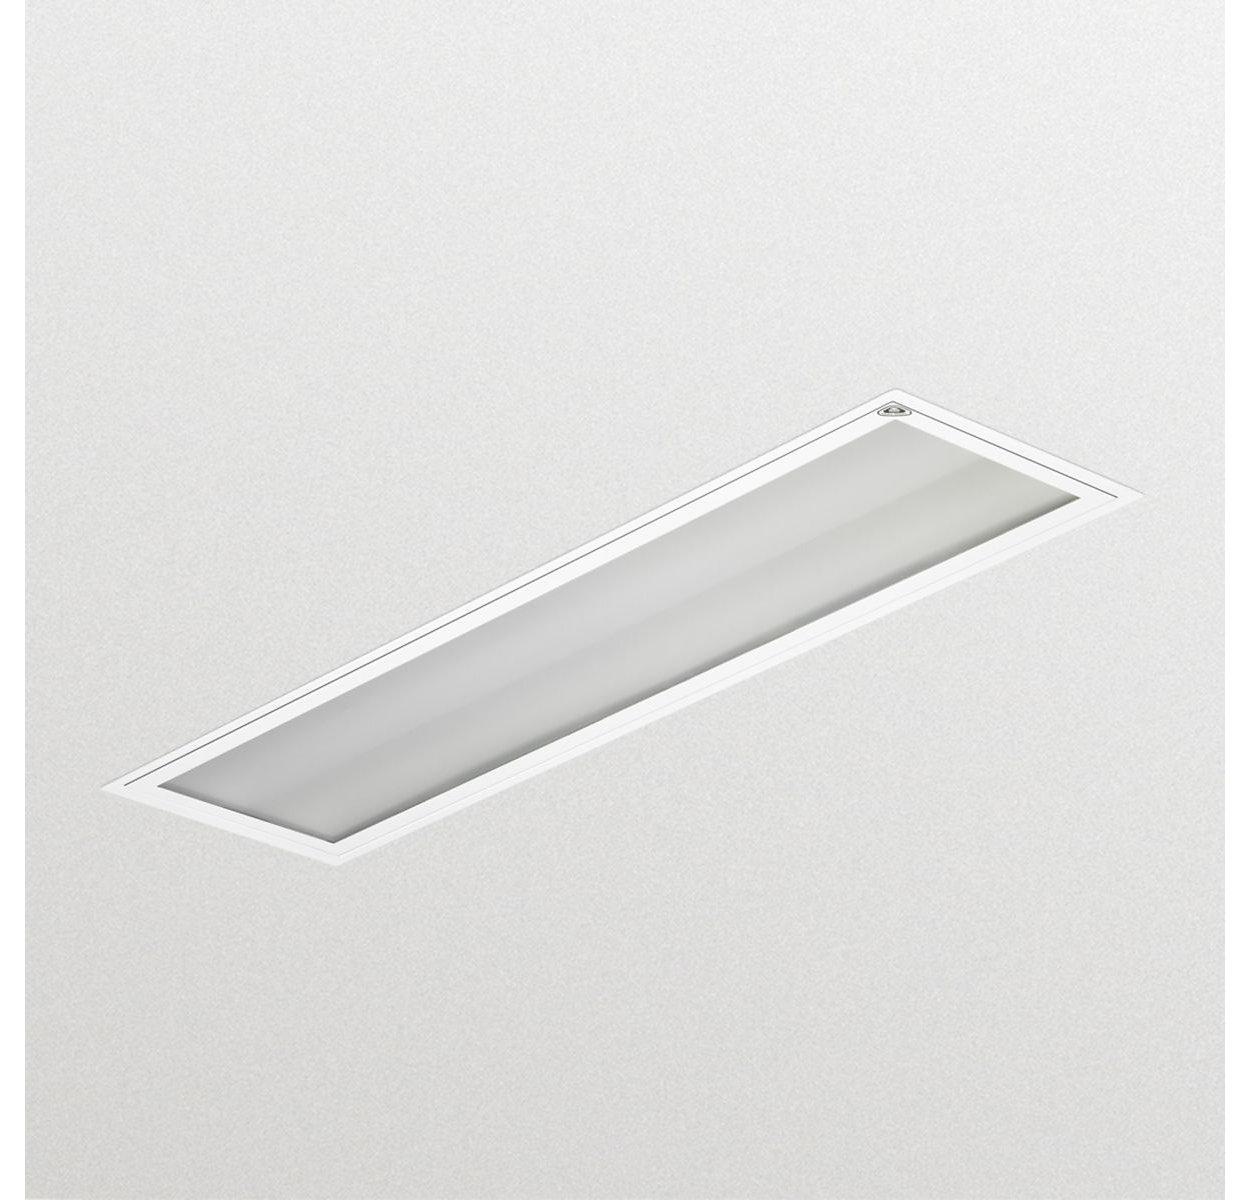 Cleanroom LED – hygienic and efficient